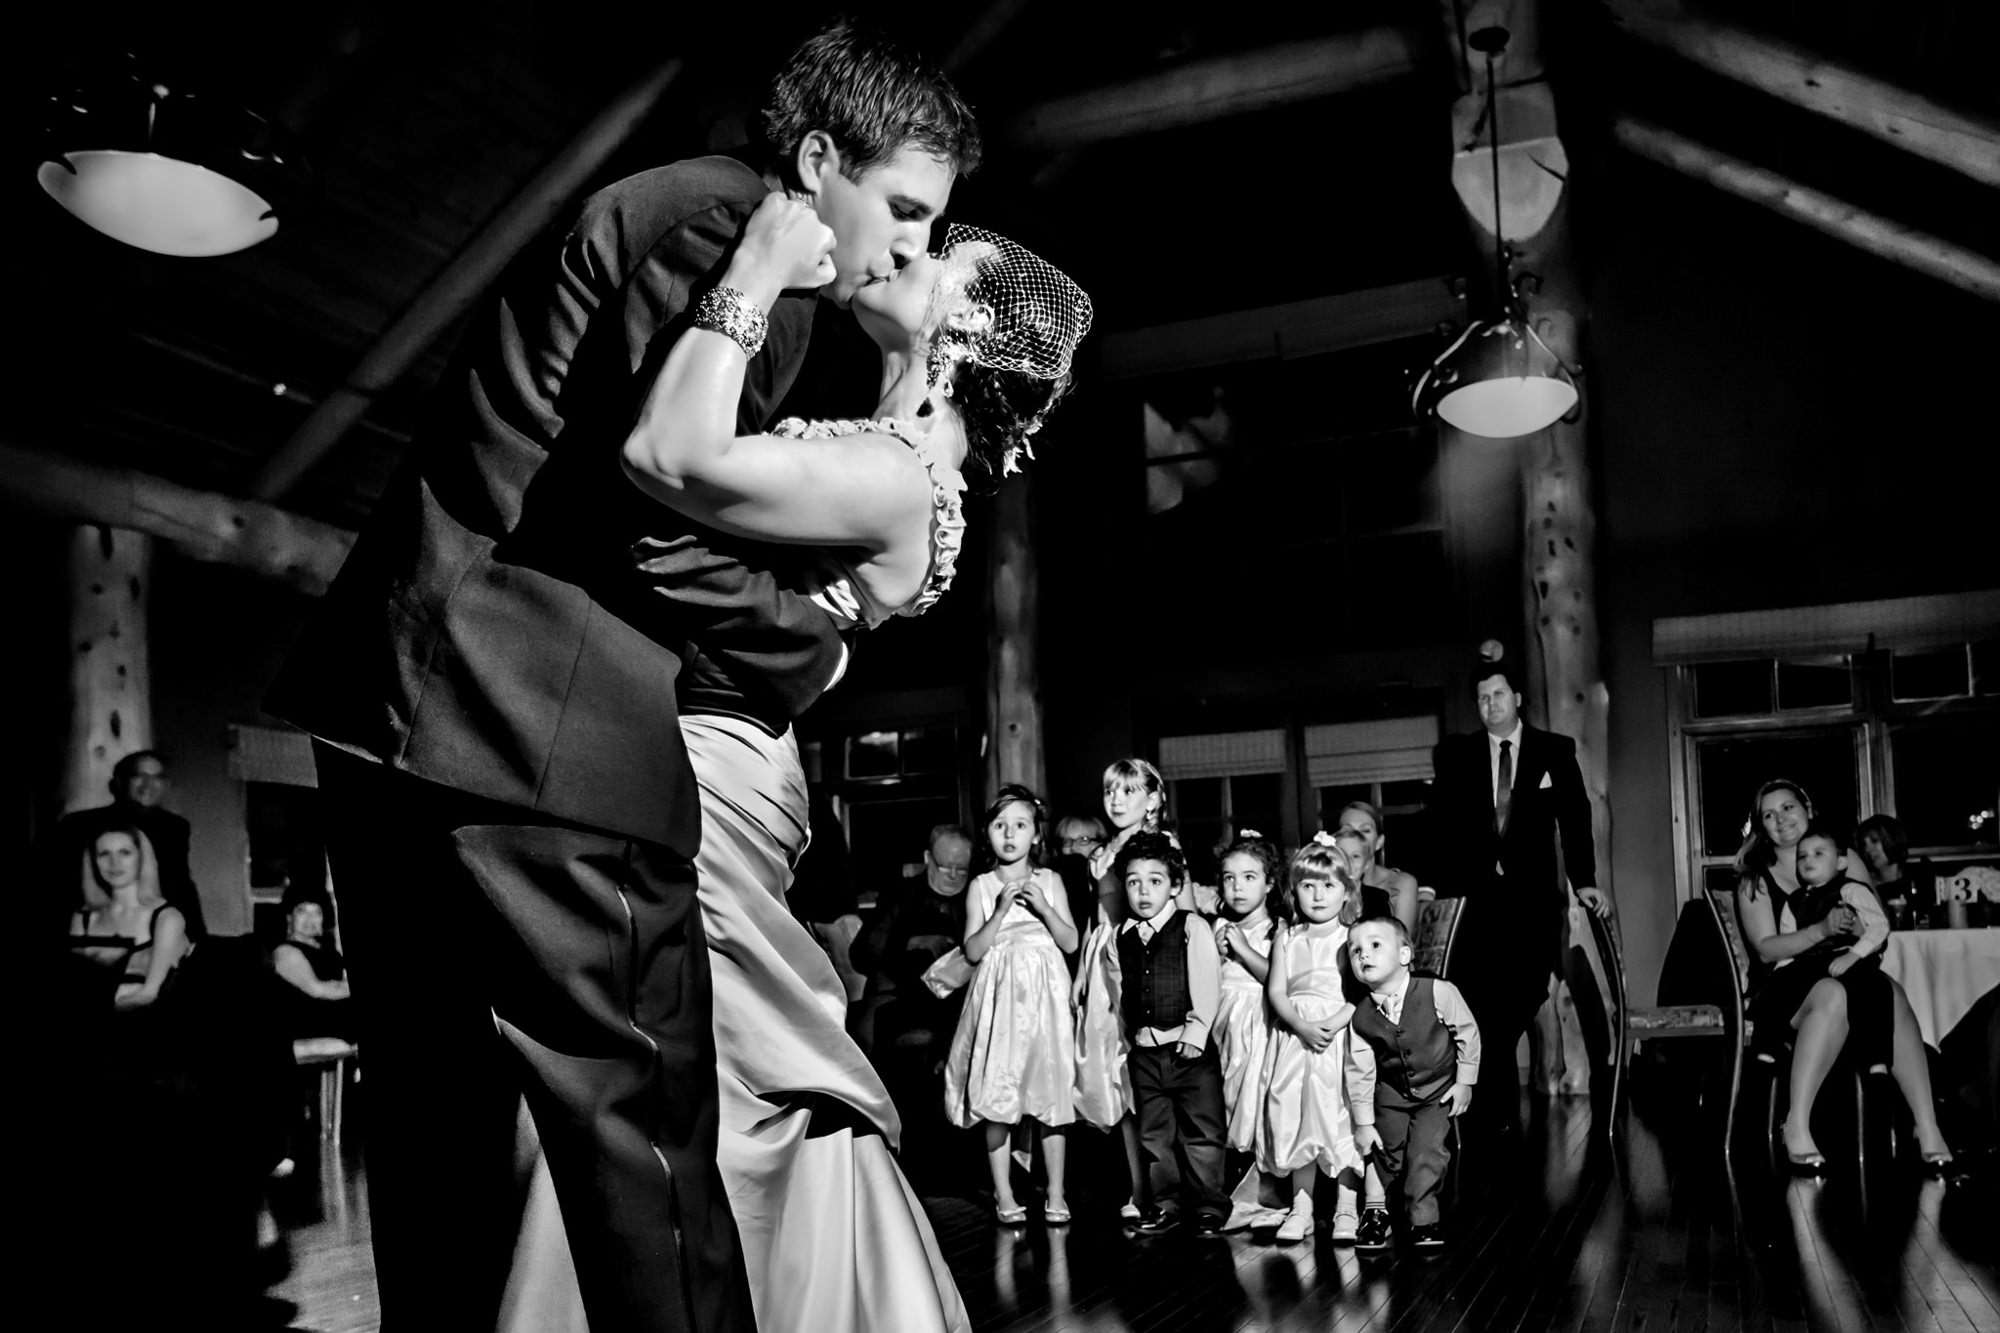 Kids amazed by bride and groom's first dance - photo by Two Mann Studios